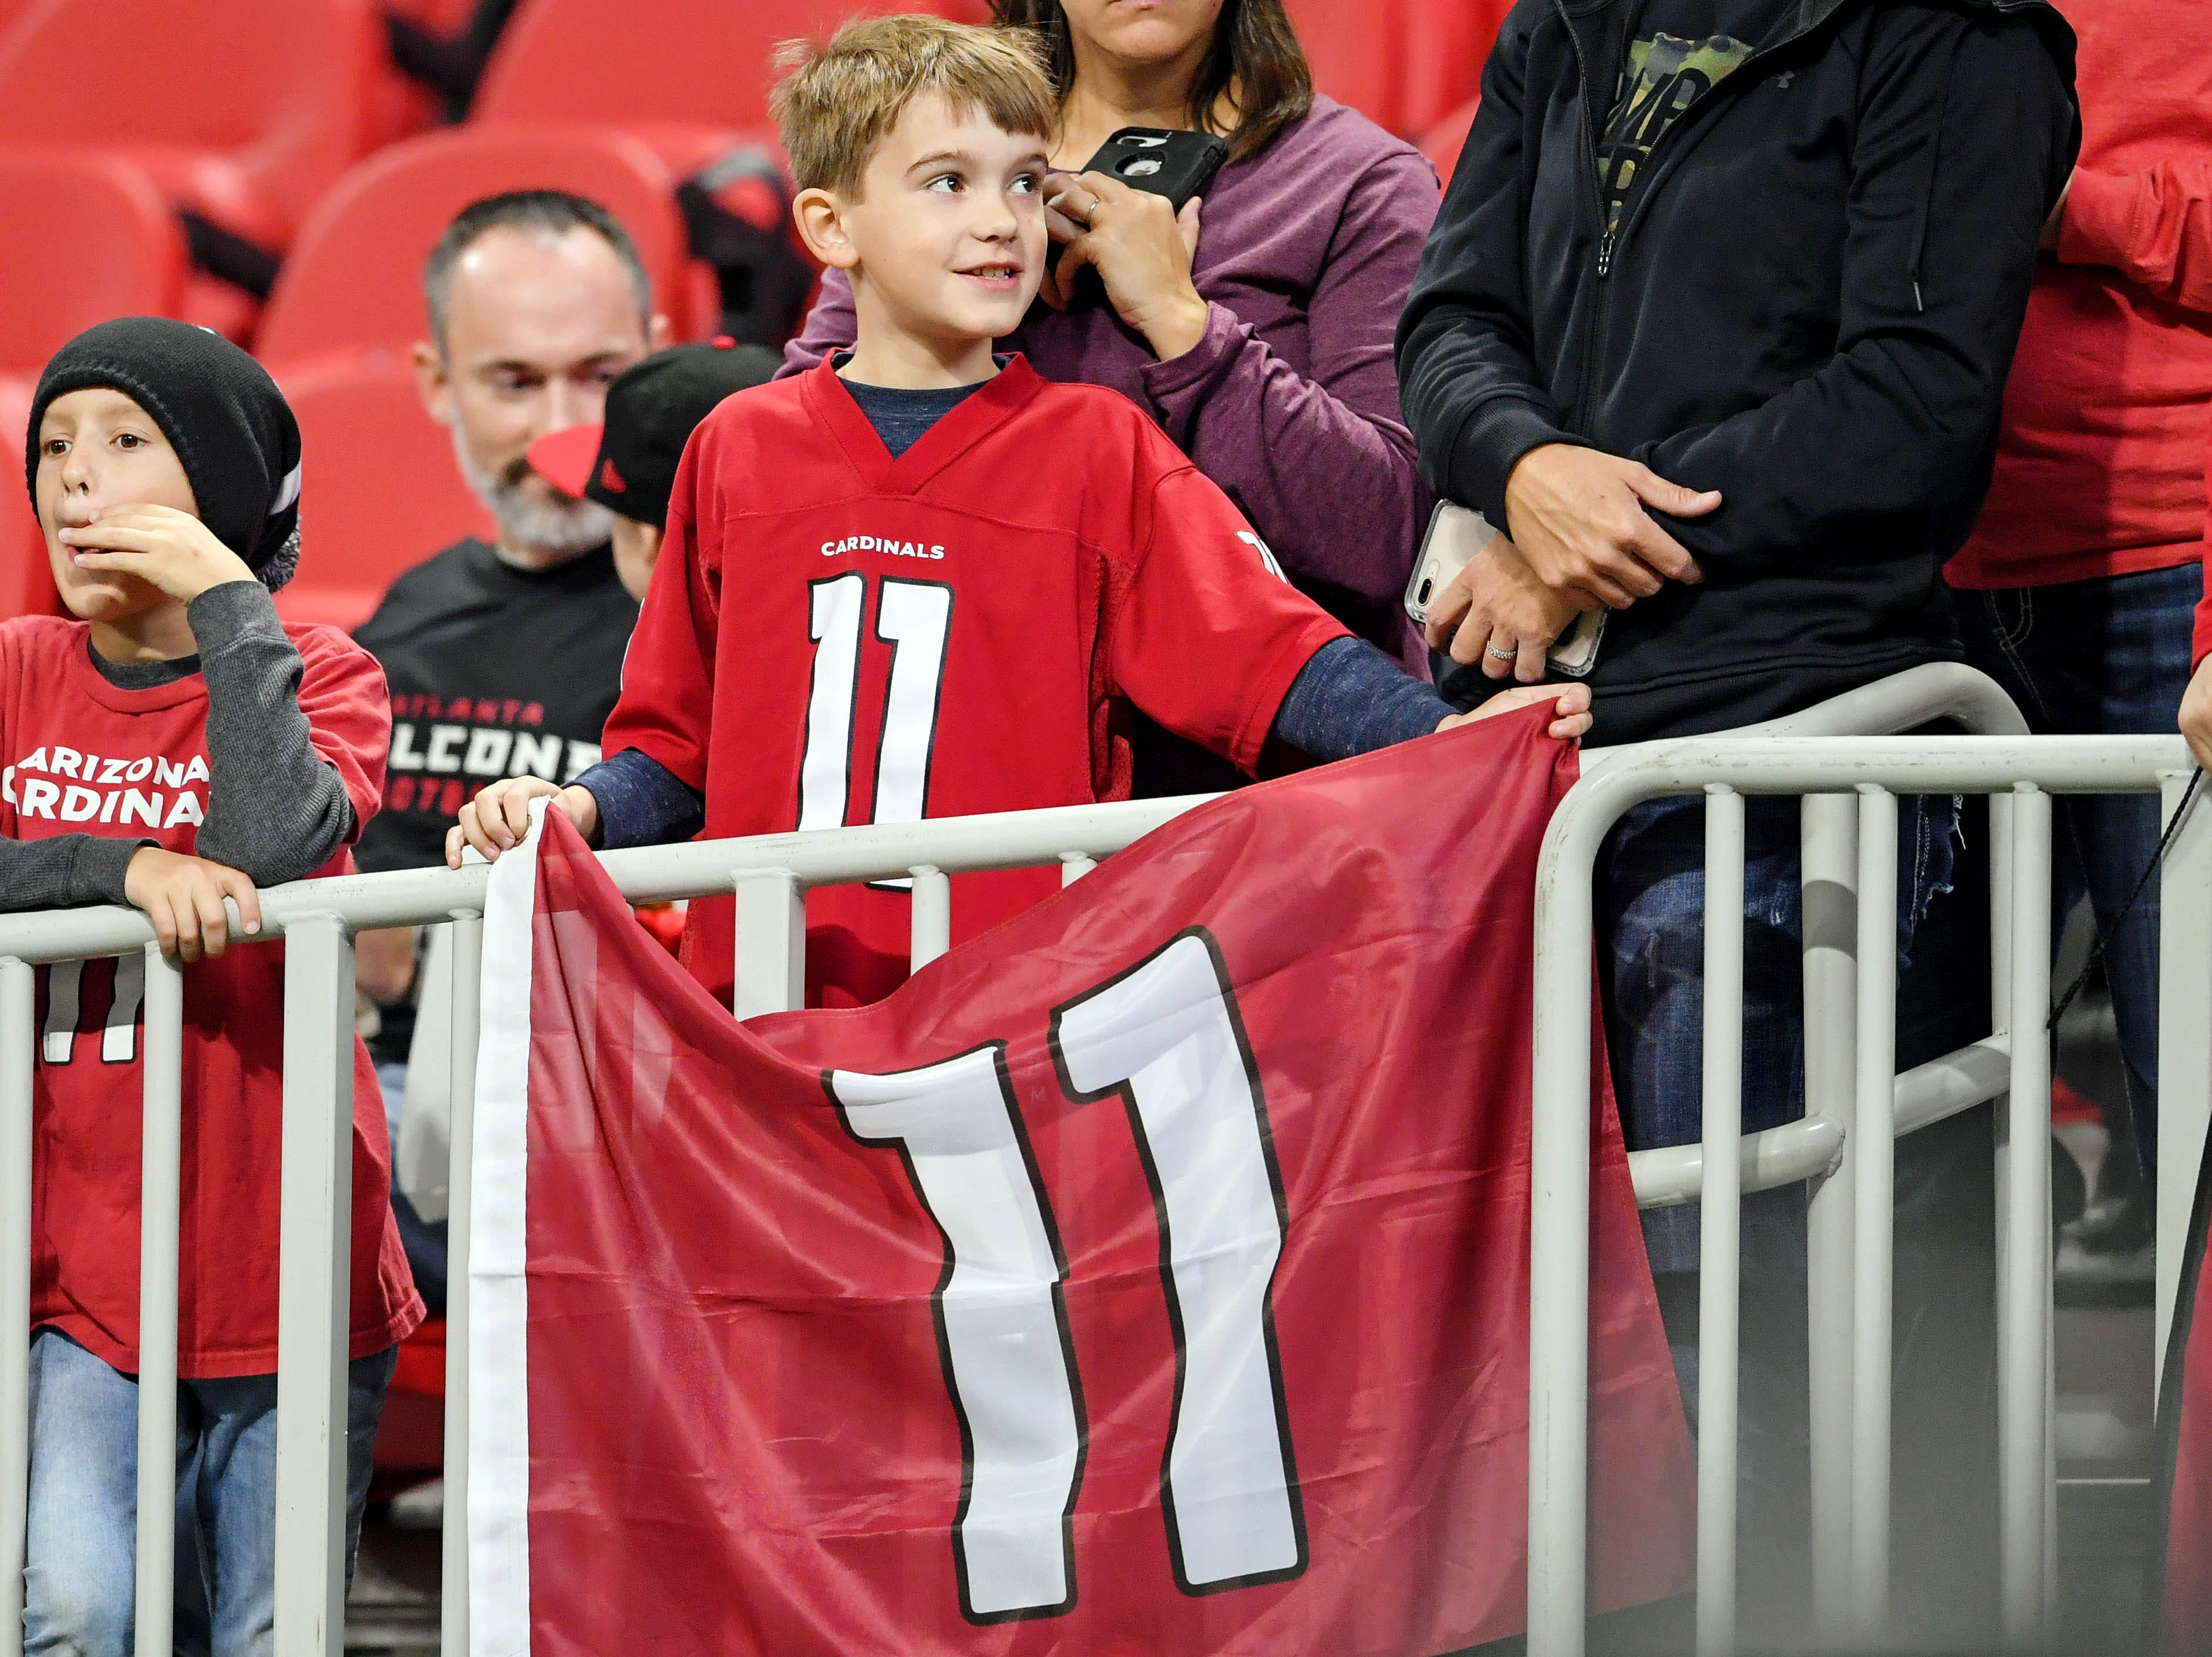 Dec 16, 2018; Atlanta, GA, USA; A fan of the Arizona Cardinals looks for his favorite players during pregame prior to the game against the Atlanta Falcons at Mercedes-Benz Stadium.